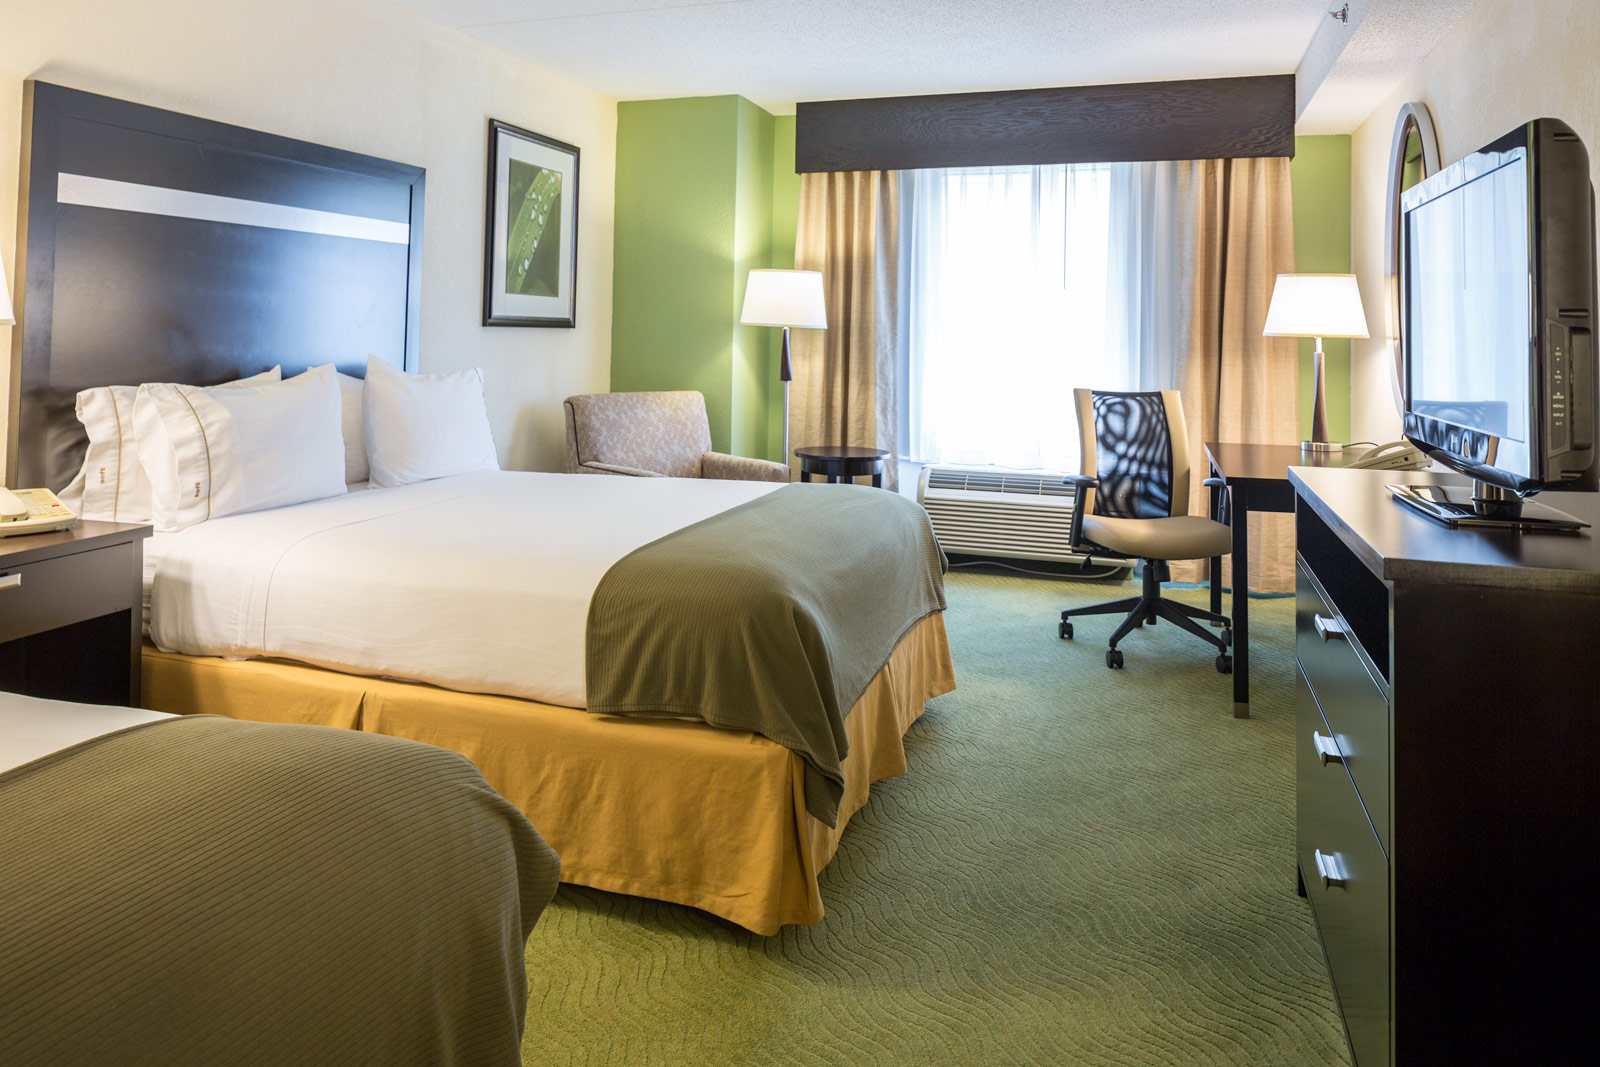 Holiday Inn Express & Suites Double Guest Room